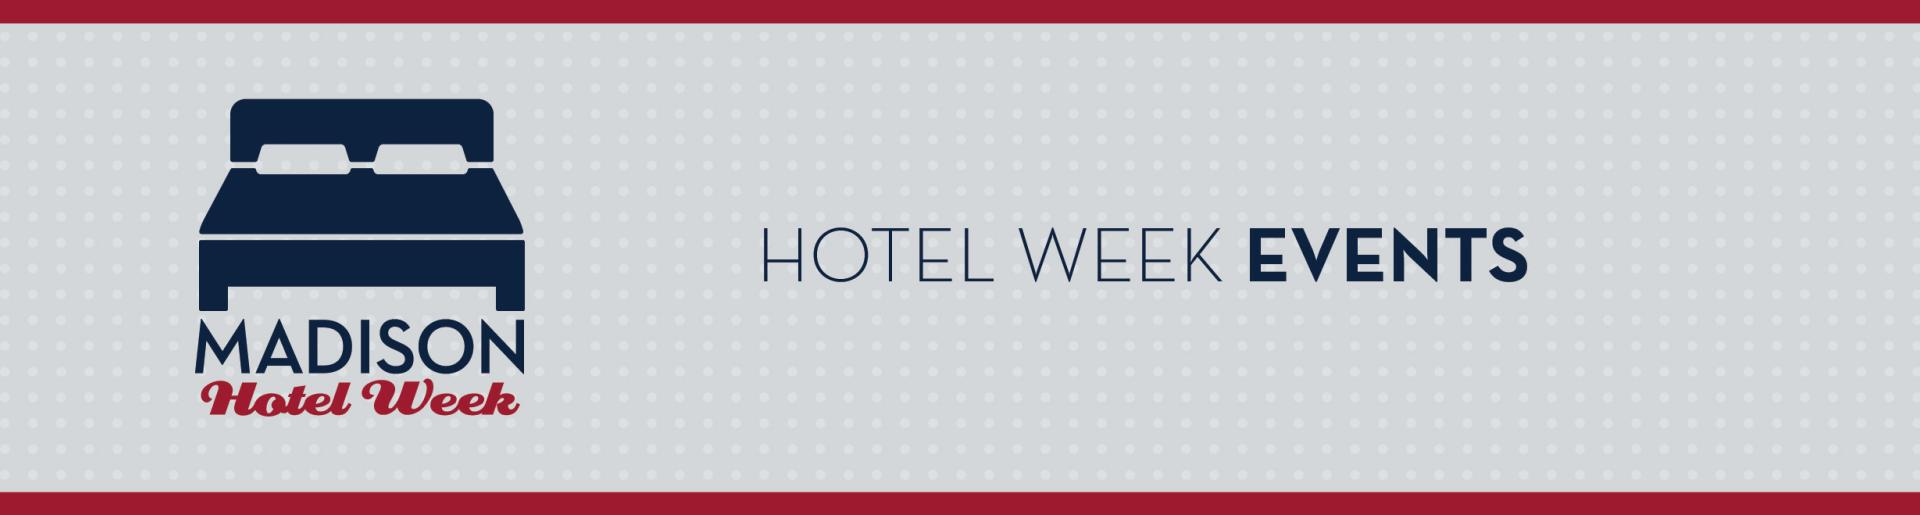 Madison Hotel Week: Events